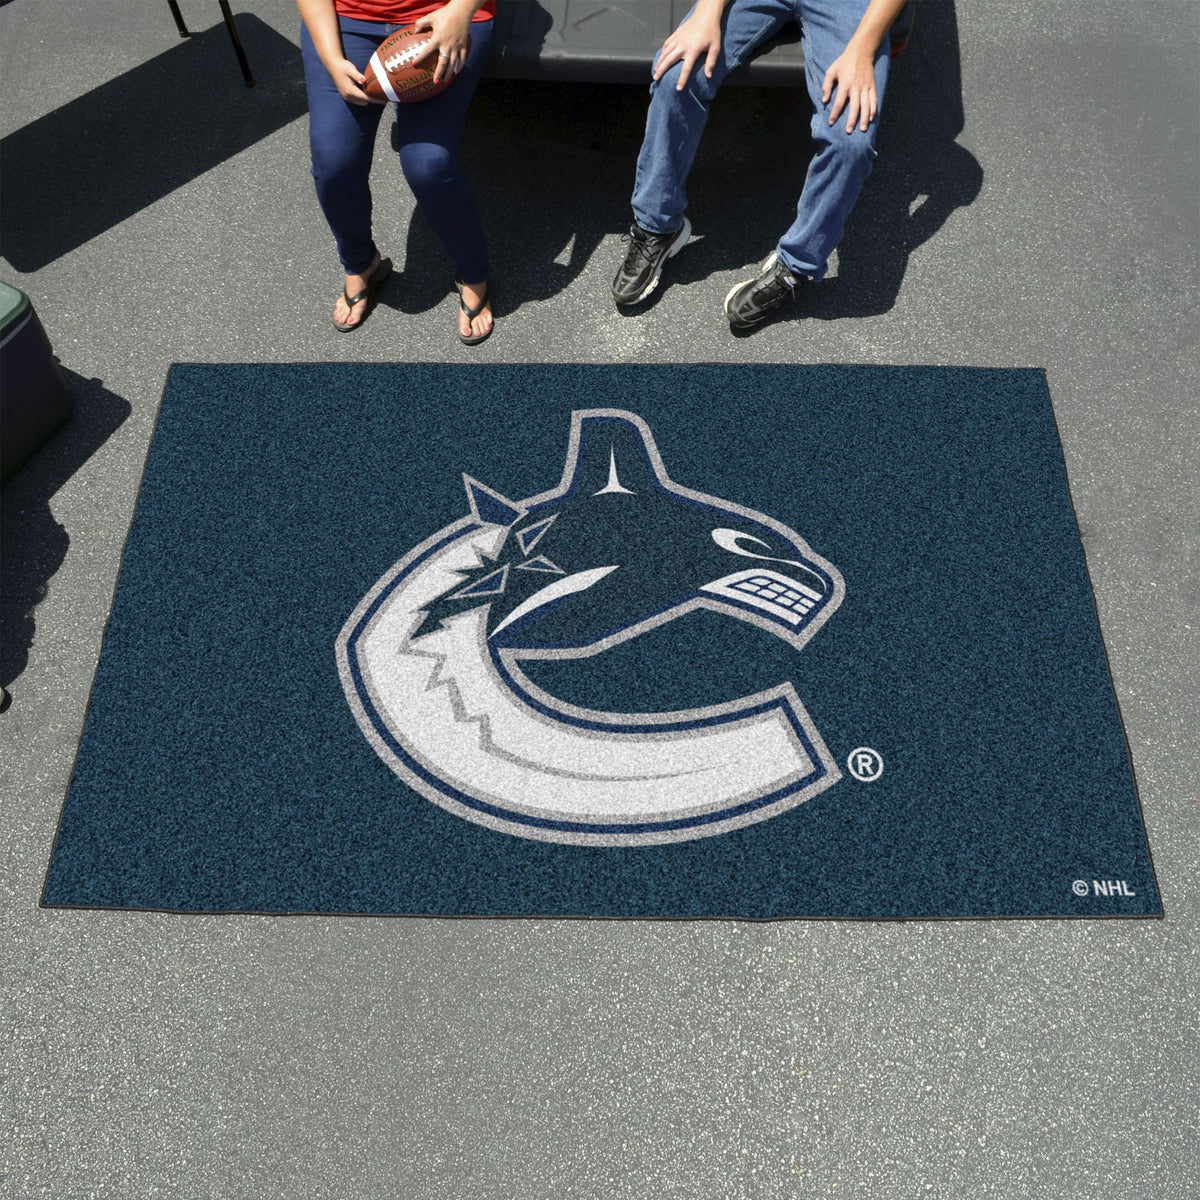 NHL - Ulti-Mat NHL Mats, Rectangular Mats, Ulti-Mat, NHL, Home Fan Mats Vancouver Canucks